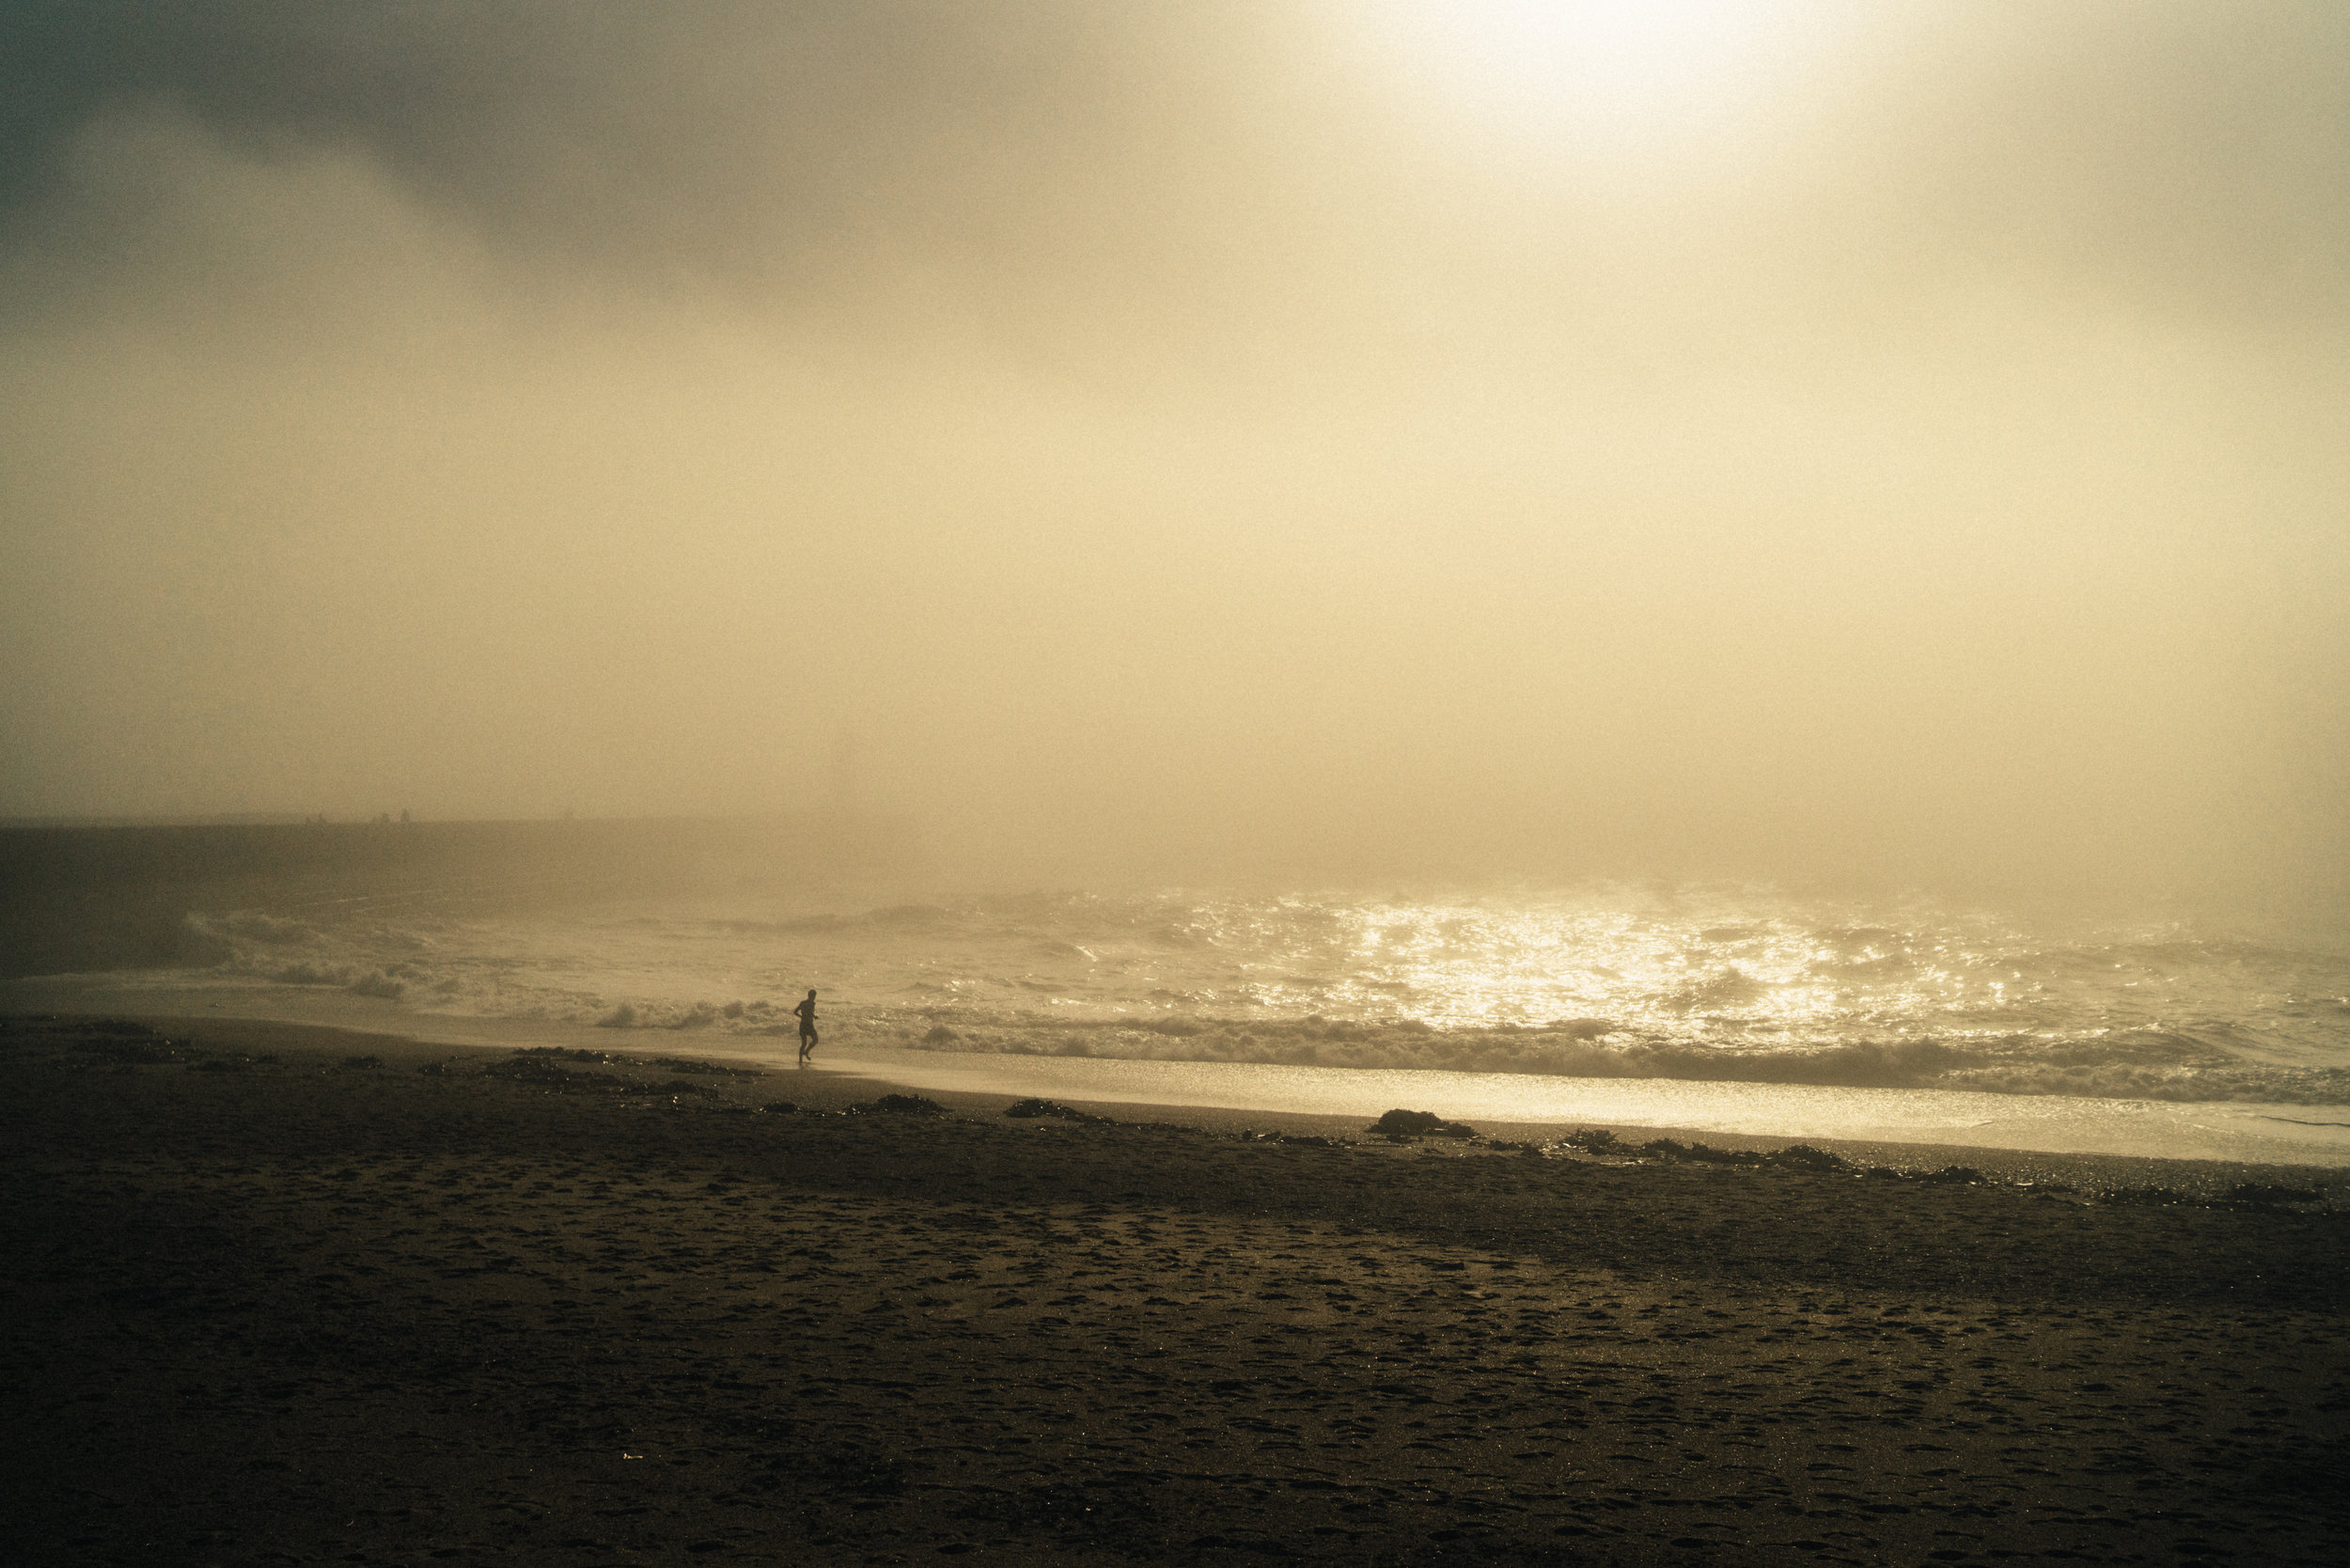 Atlantic Ocean in a hazy dreamy fog.